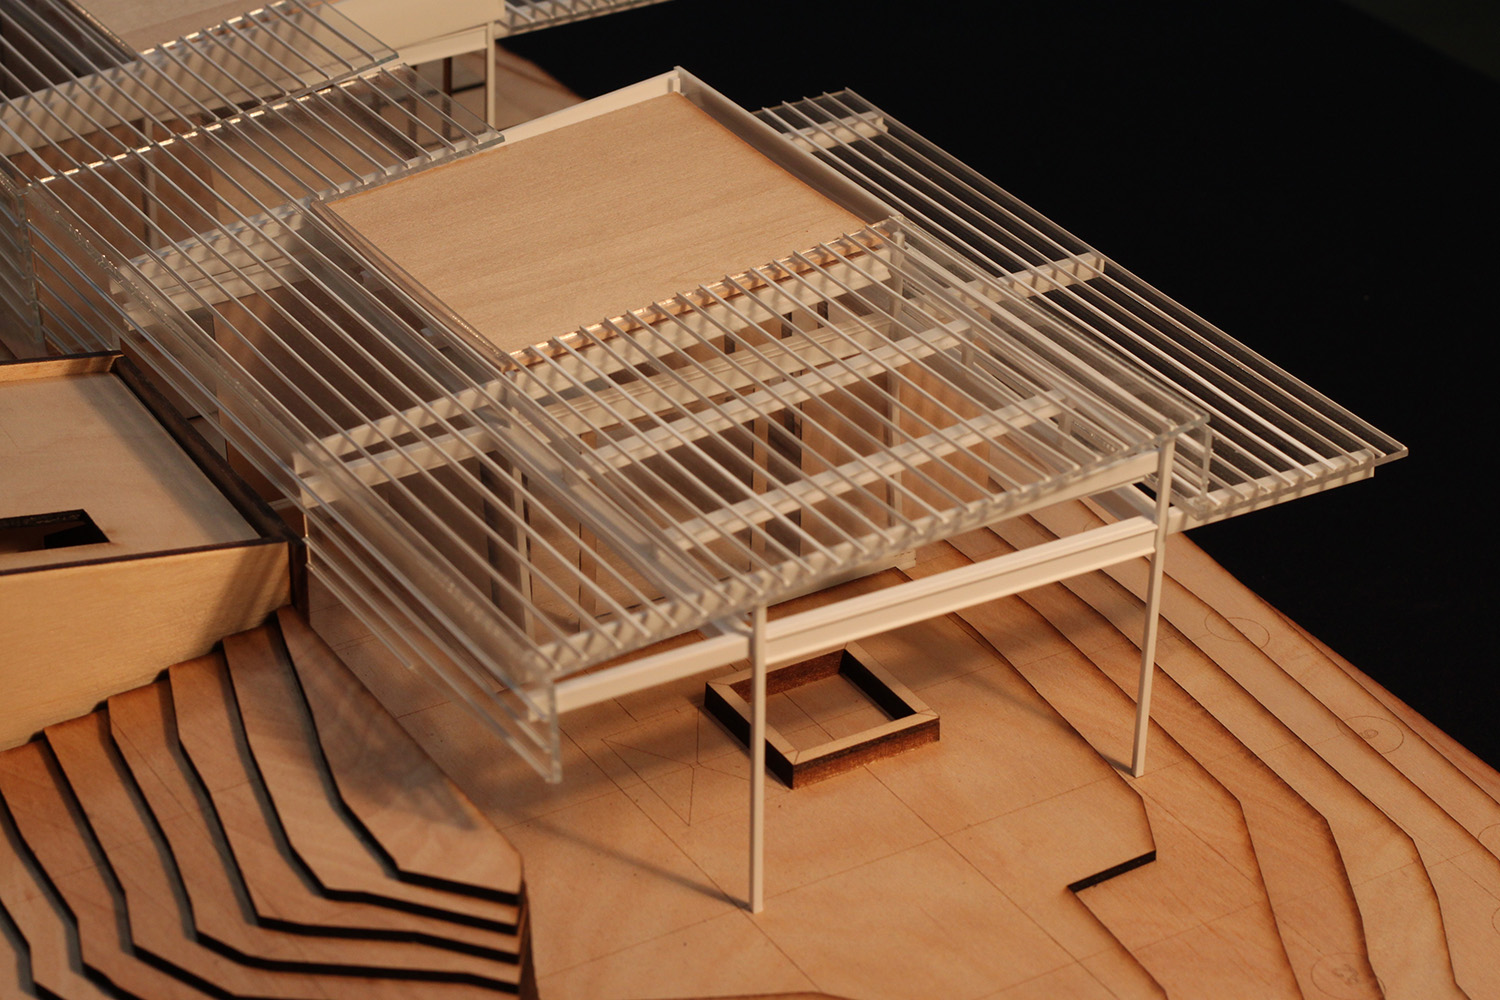 Design process model in wood and cardboard, view from northwest showing detail of umbrella roof structure. Anderson Anderson Architecture}